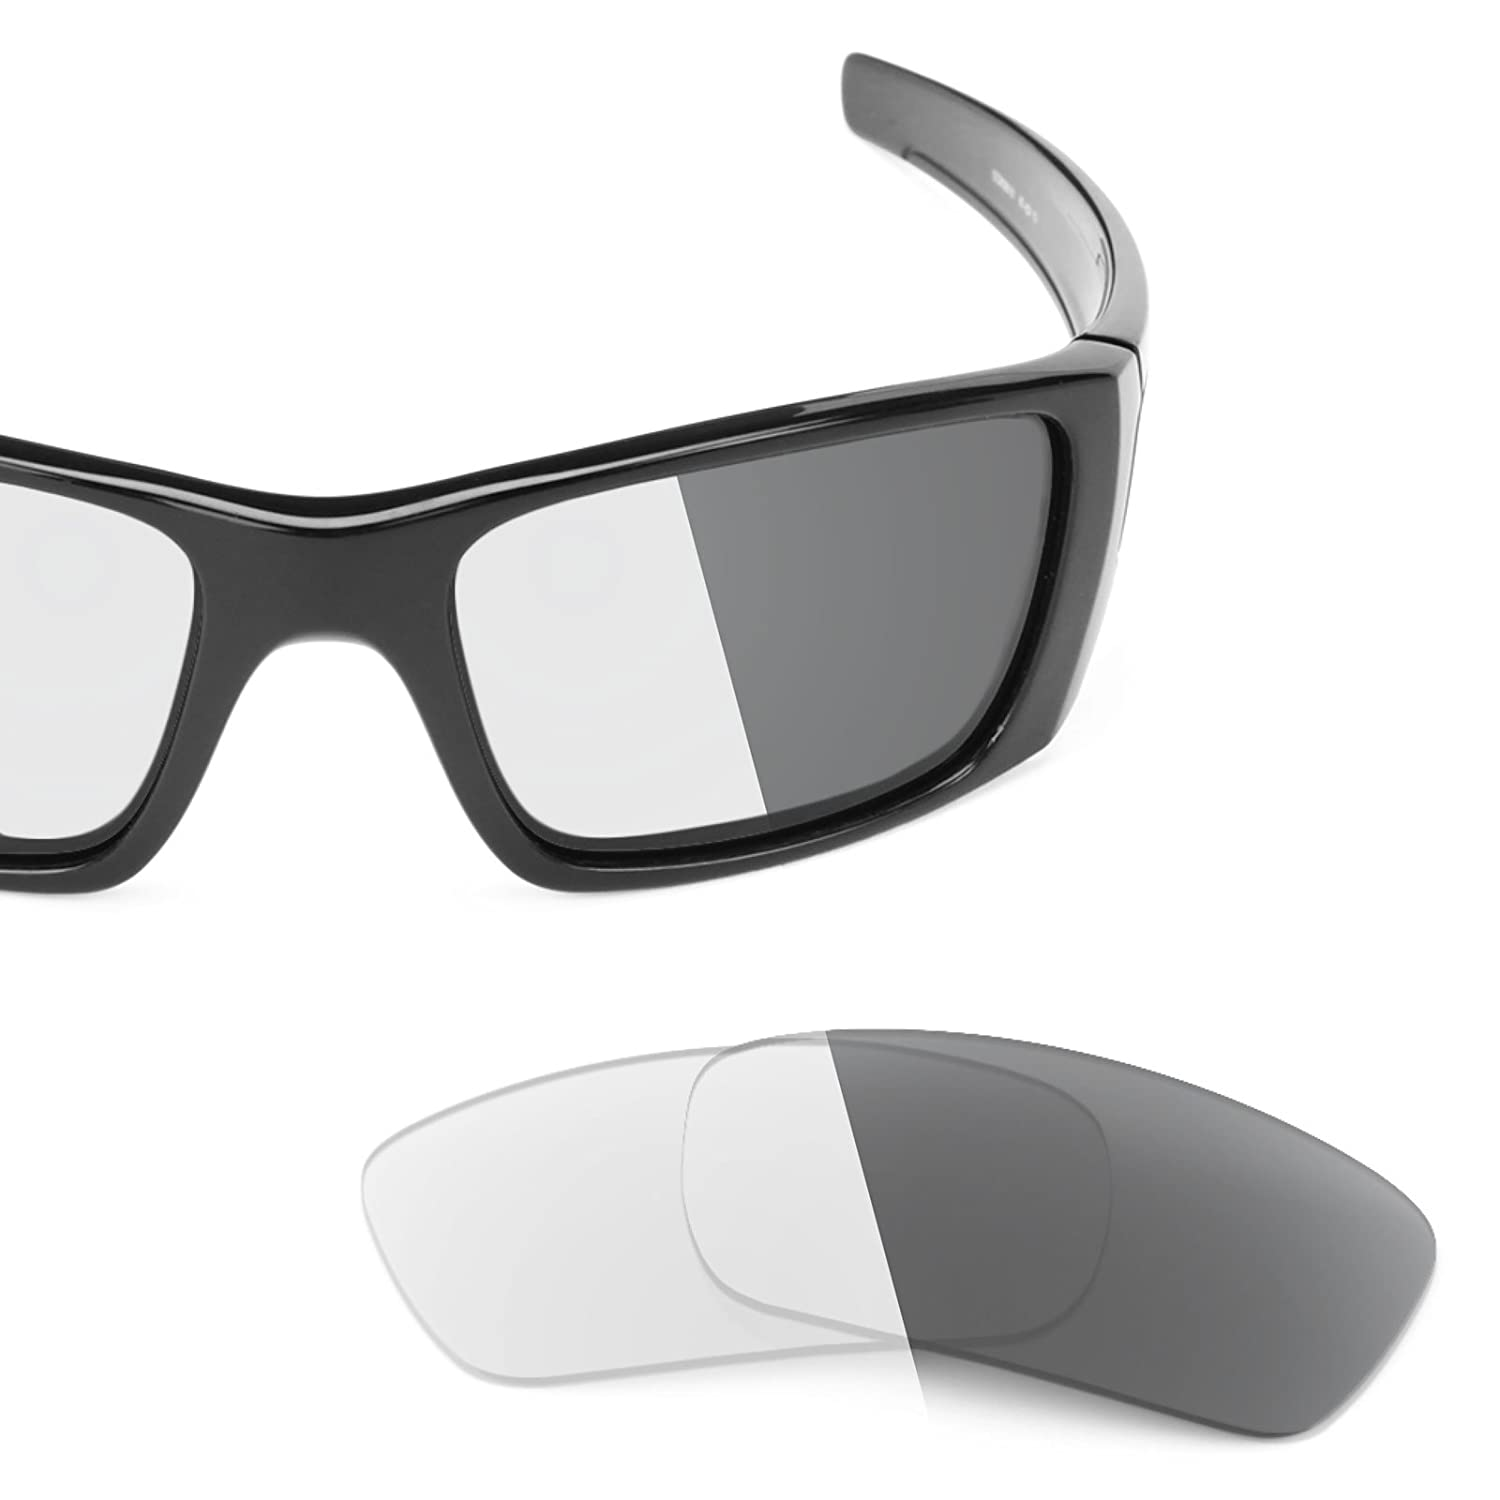 11a252199af Revant Replacement Lenses for Oakley Fuel Cell Elite Adapt Grey Photochromic   Amazon.co.uk  Clothing